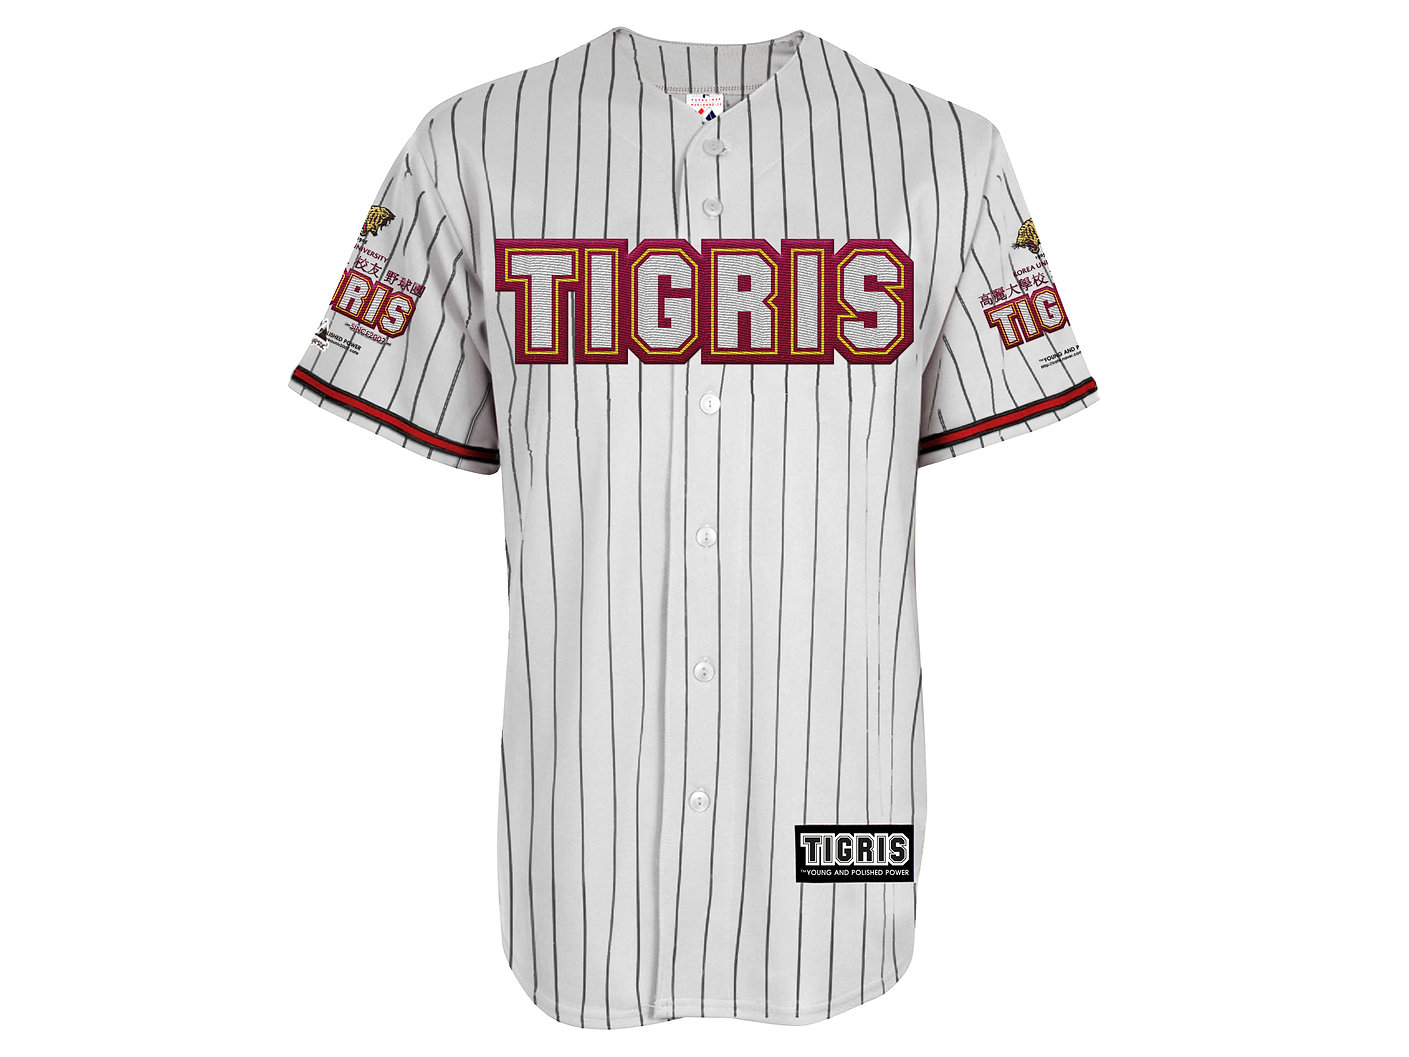 TIGRIS-Baseball Uniform Design